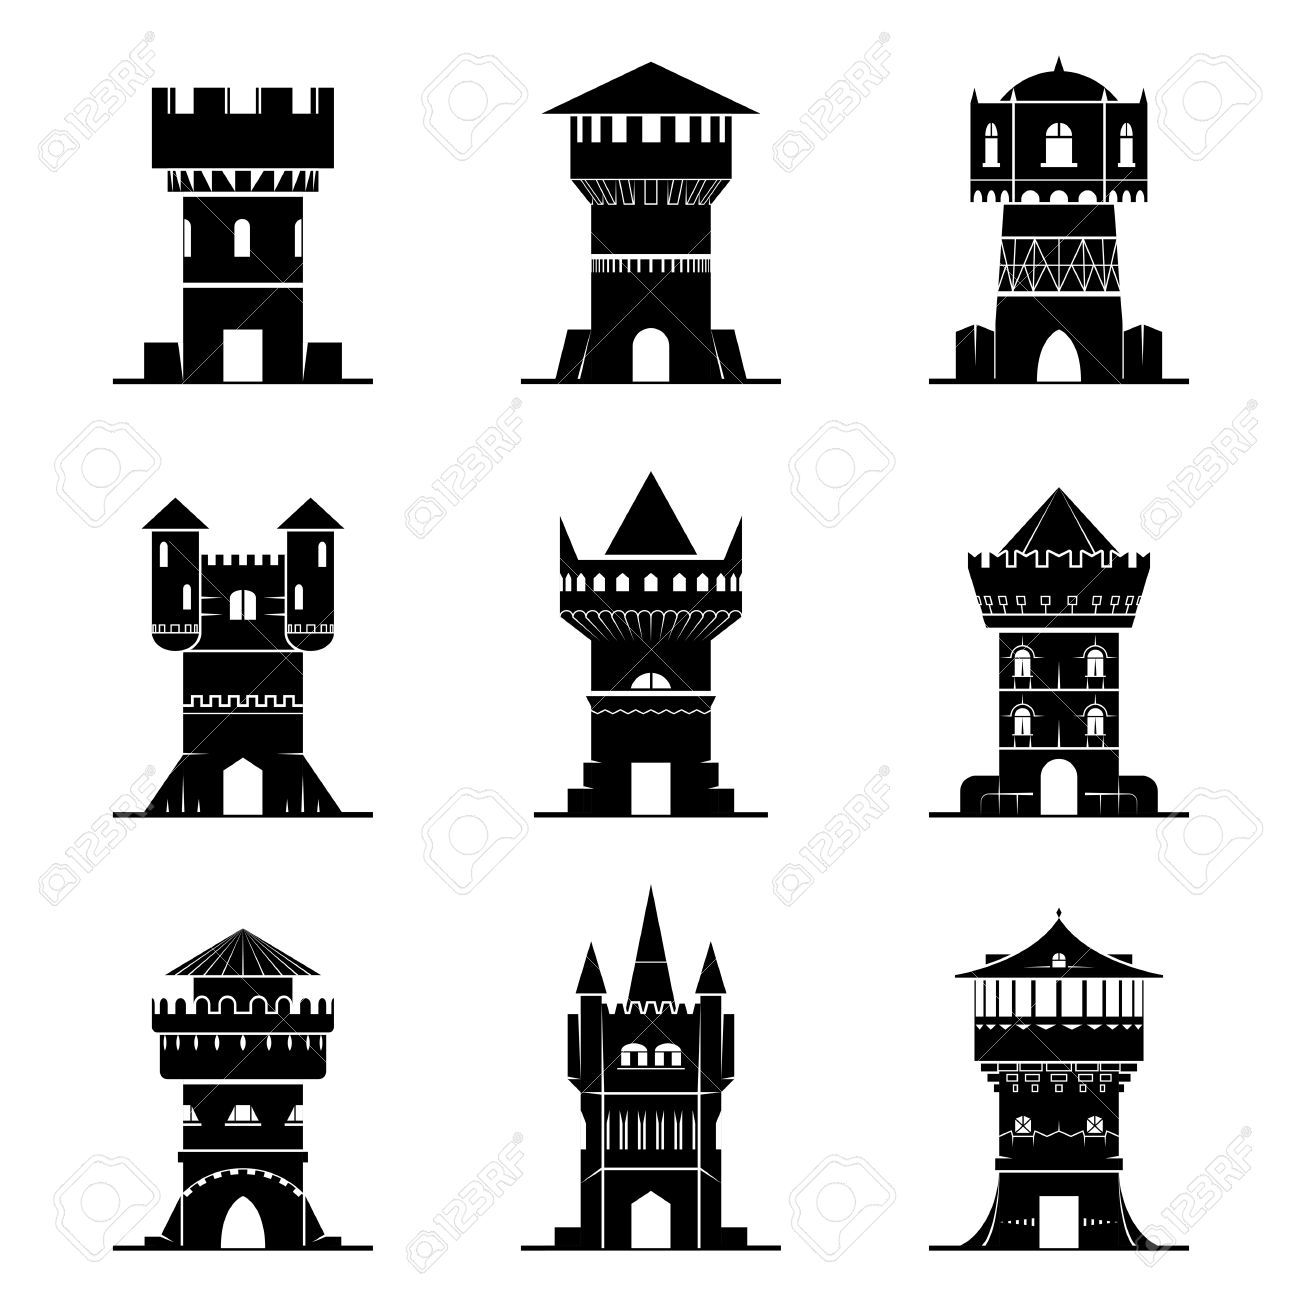 Set Of Black And White Tower Icons Vector Collection Of Symbols For